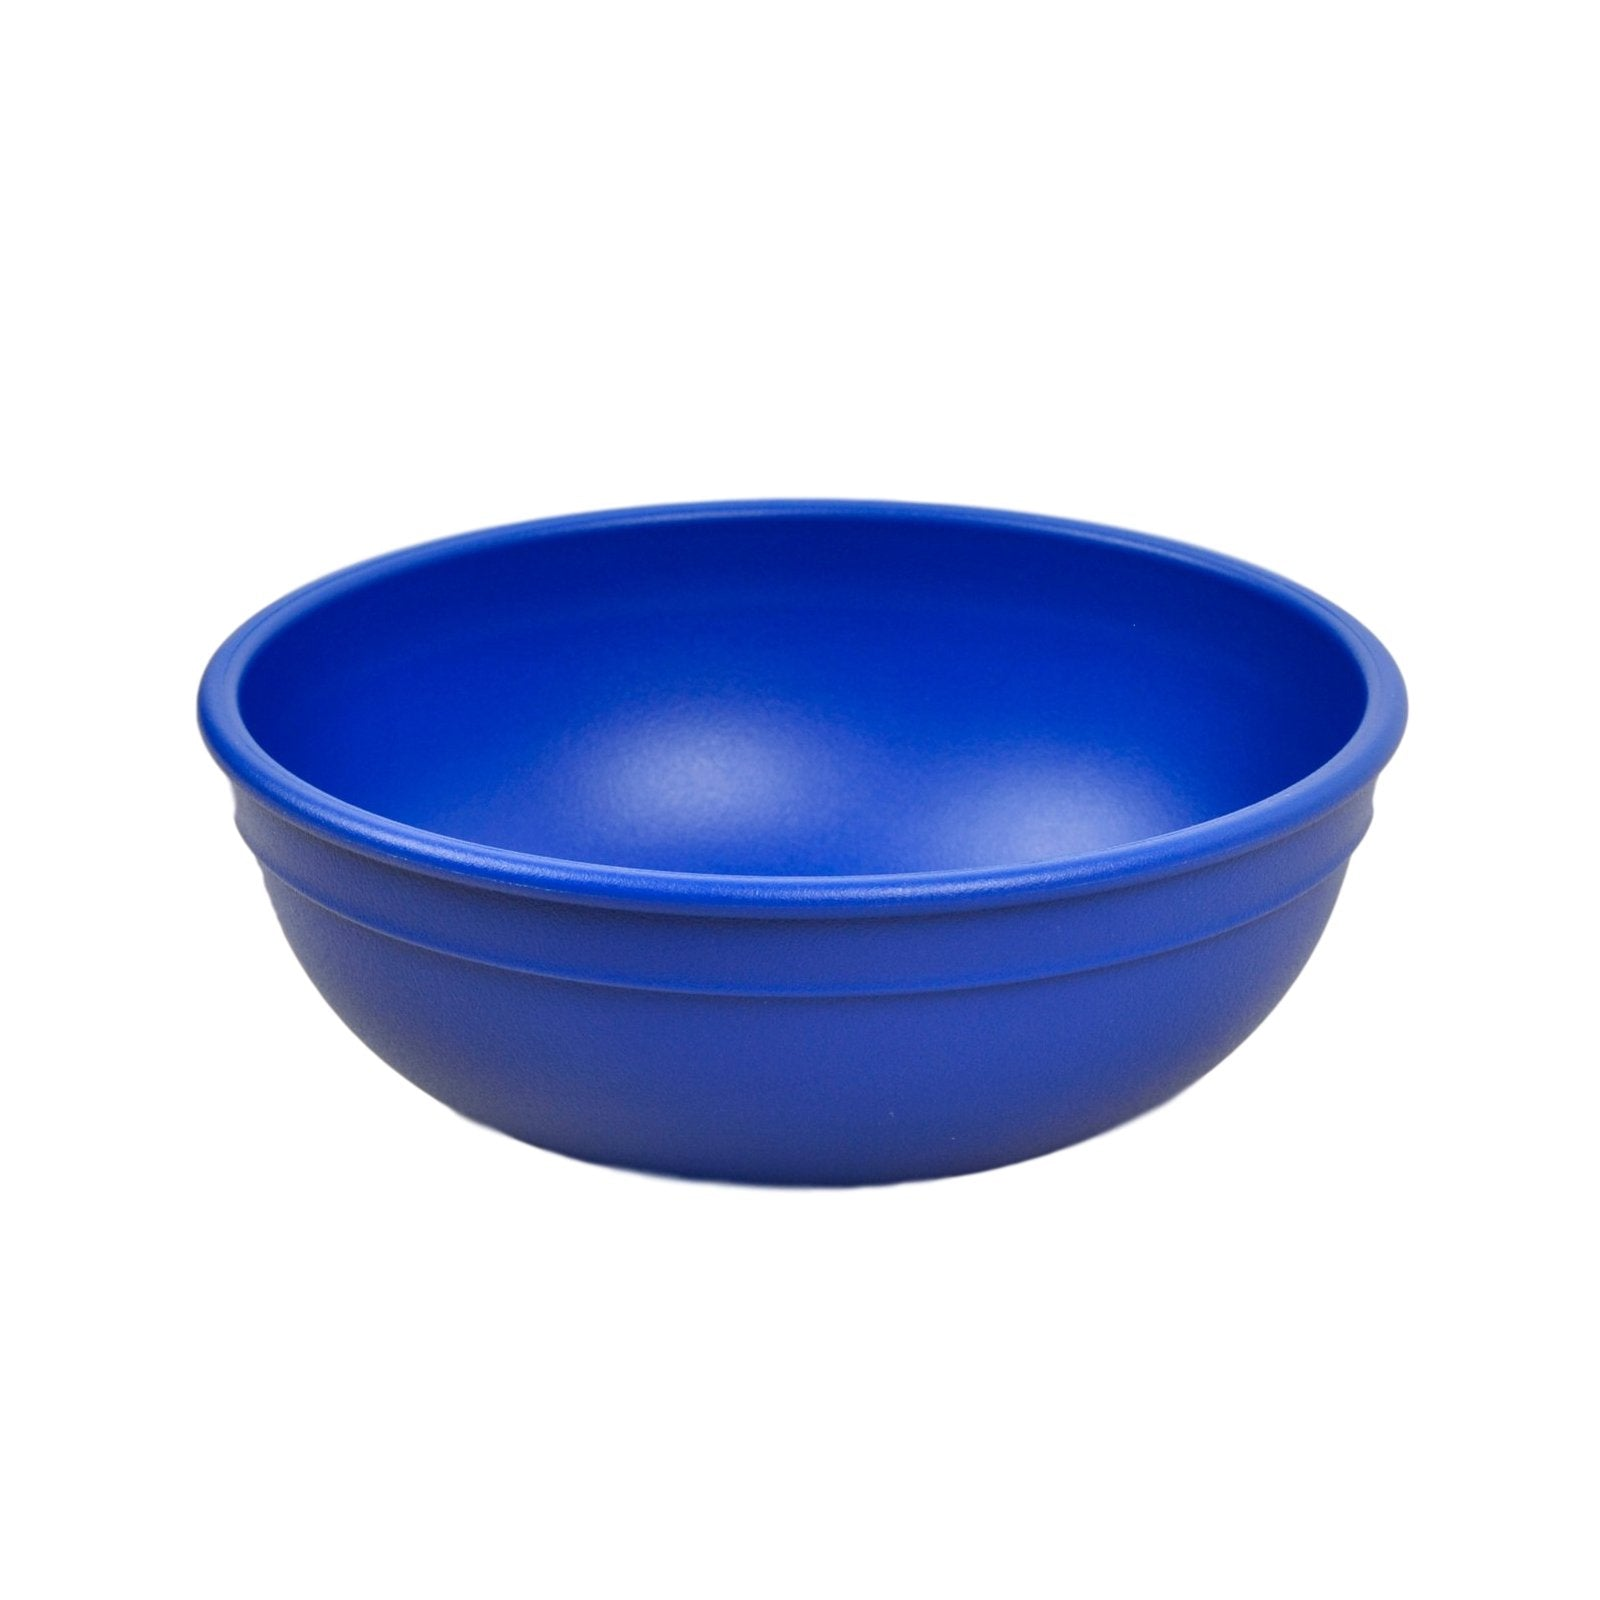 Replay Large Bowl Replay Dinnerware Navy at Little Earth Nest Eco Shop